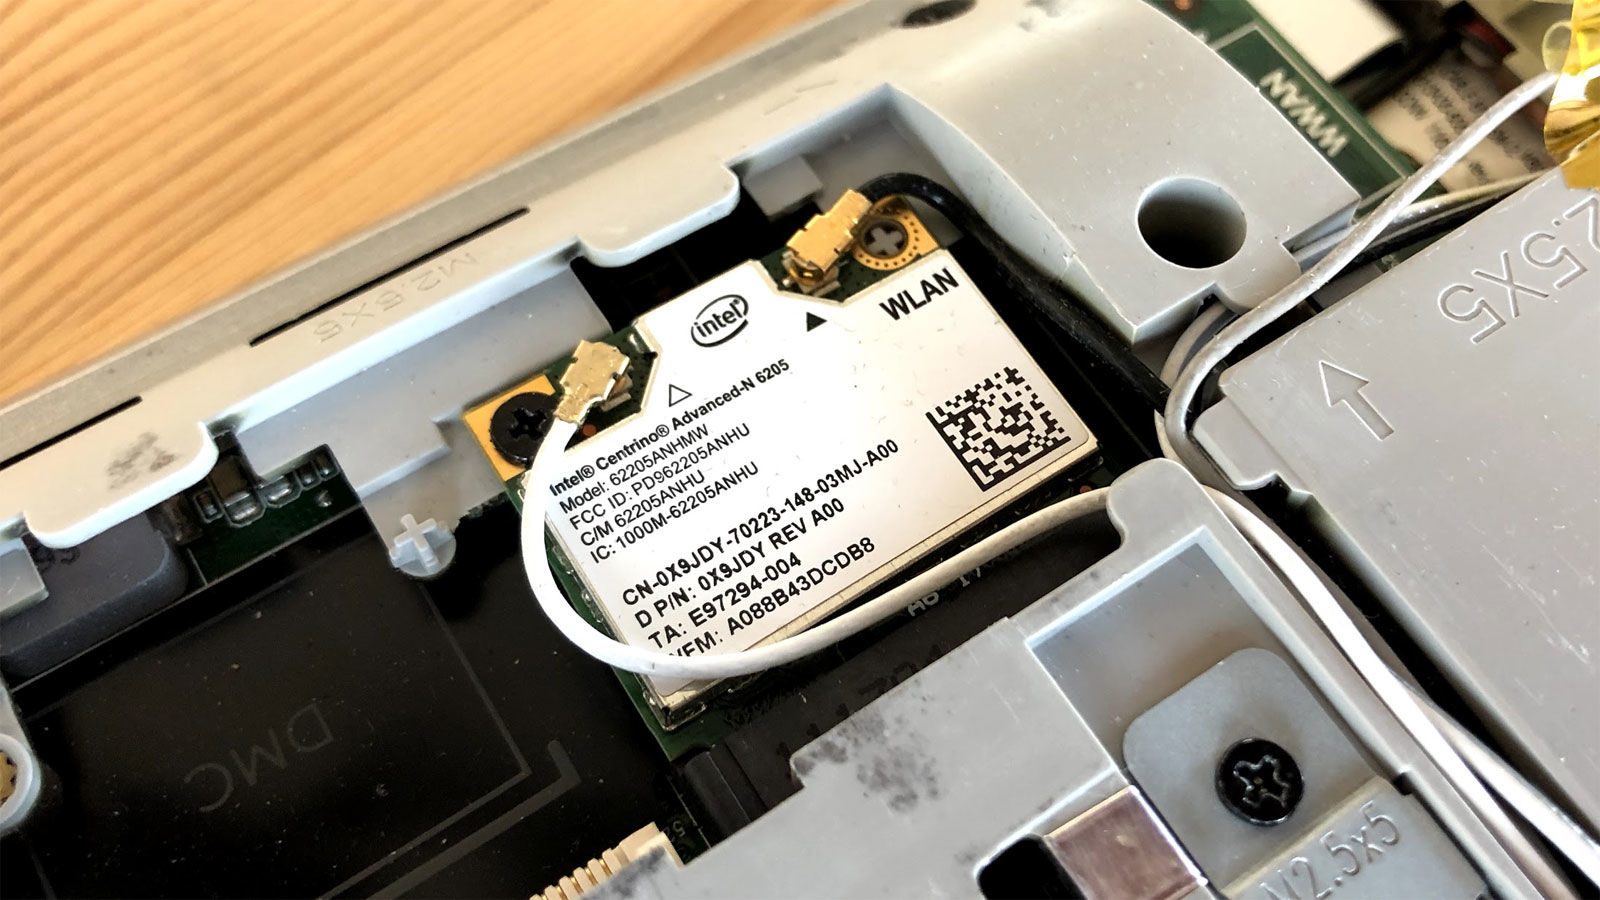 How to upgrade a laptop's WI-Fi card